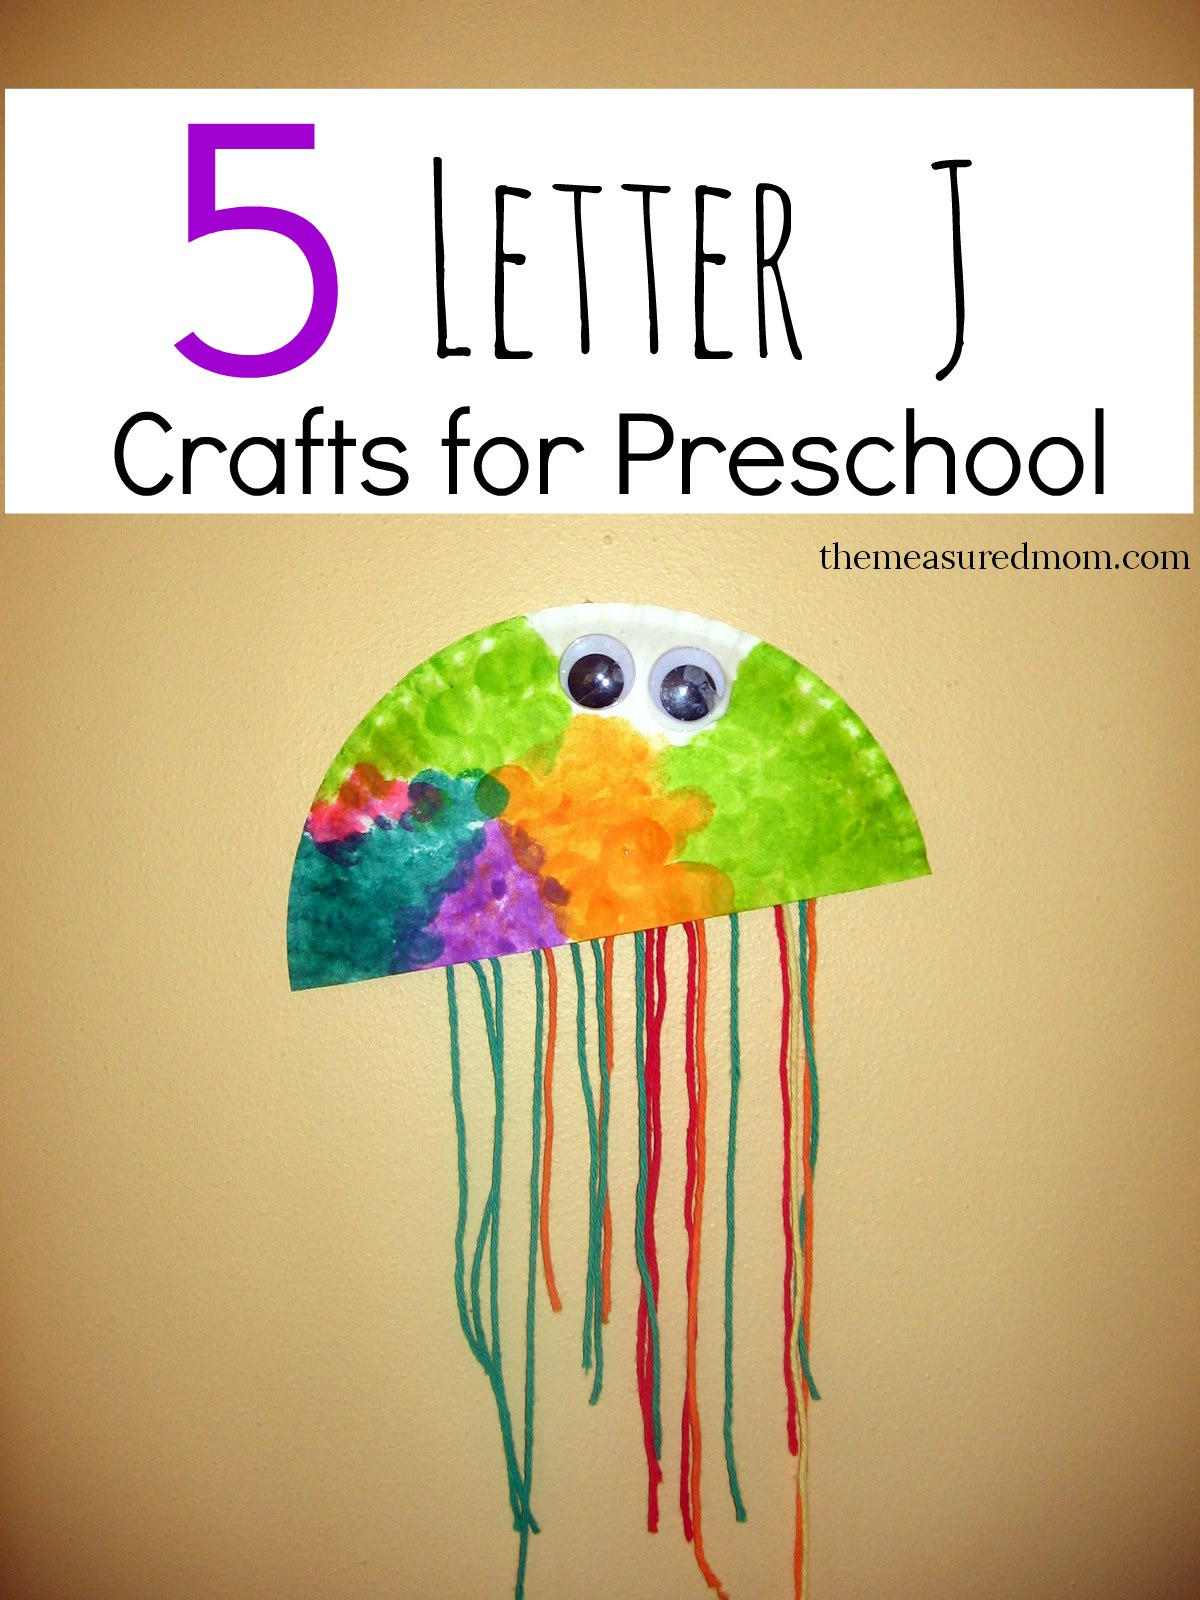 Preschool Arts And Craft  Letter J Crafts The Measured Mom